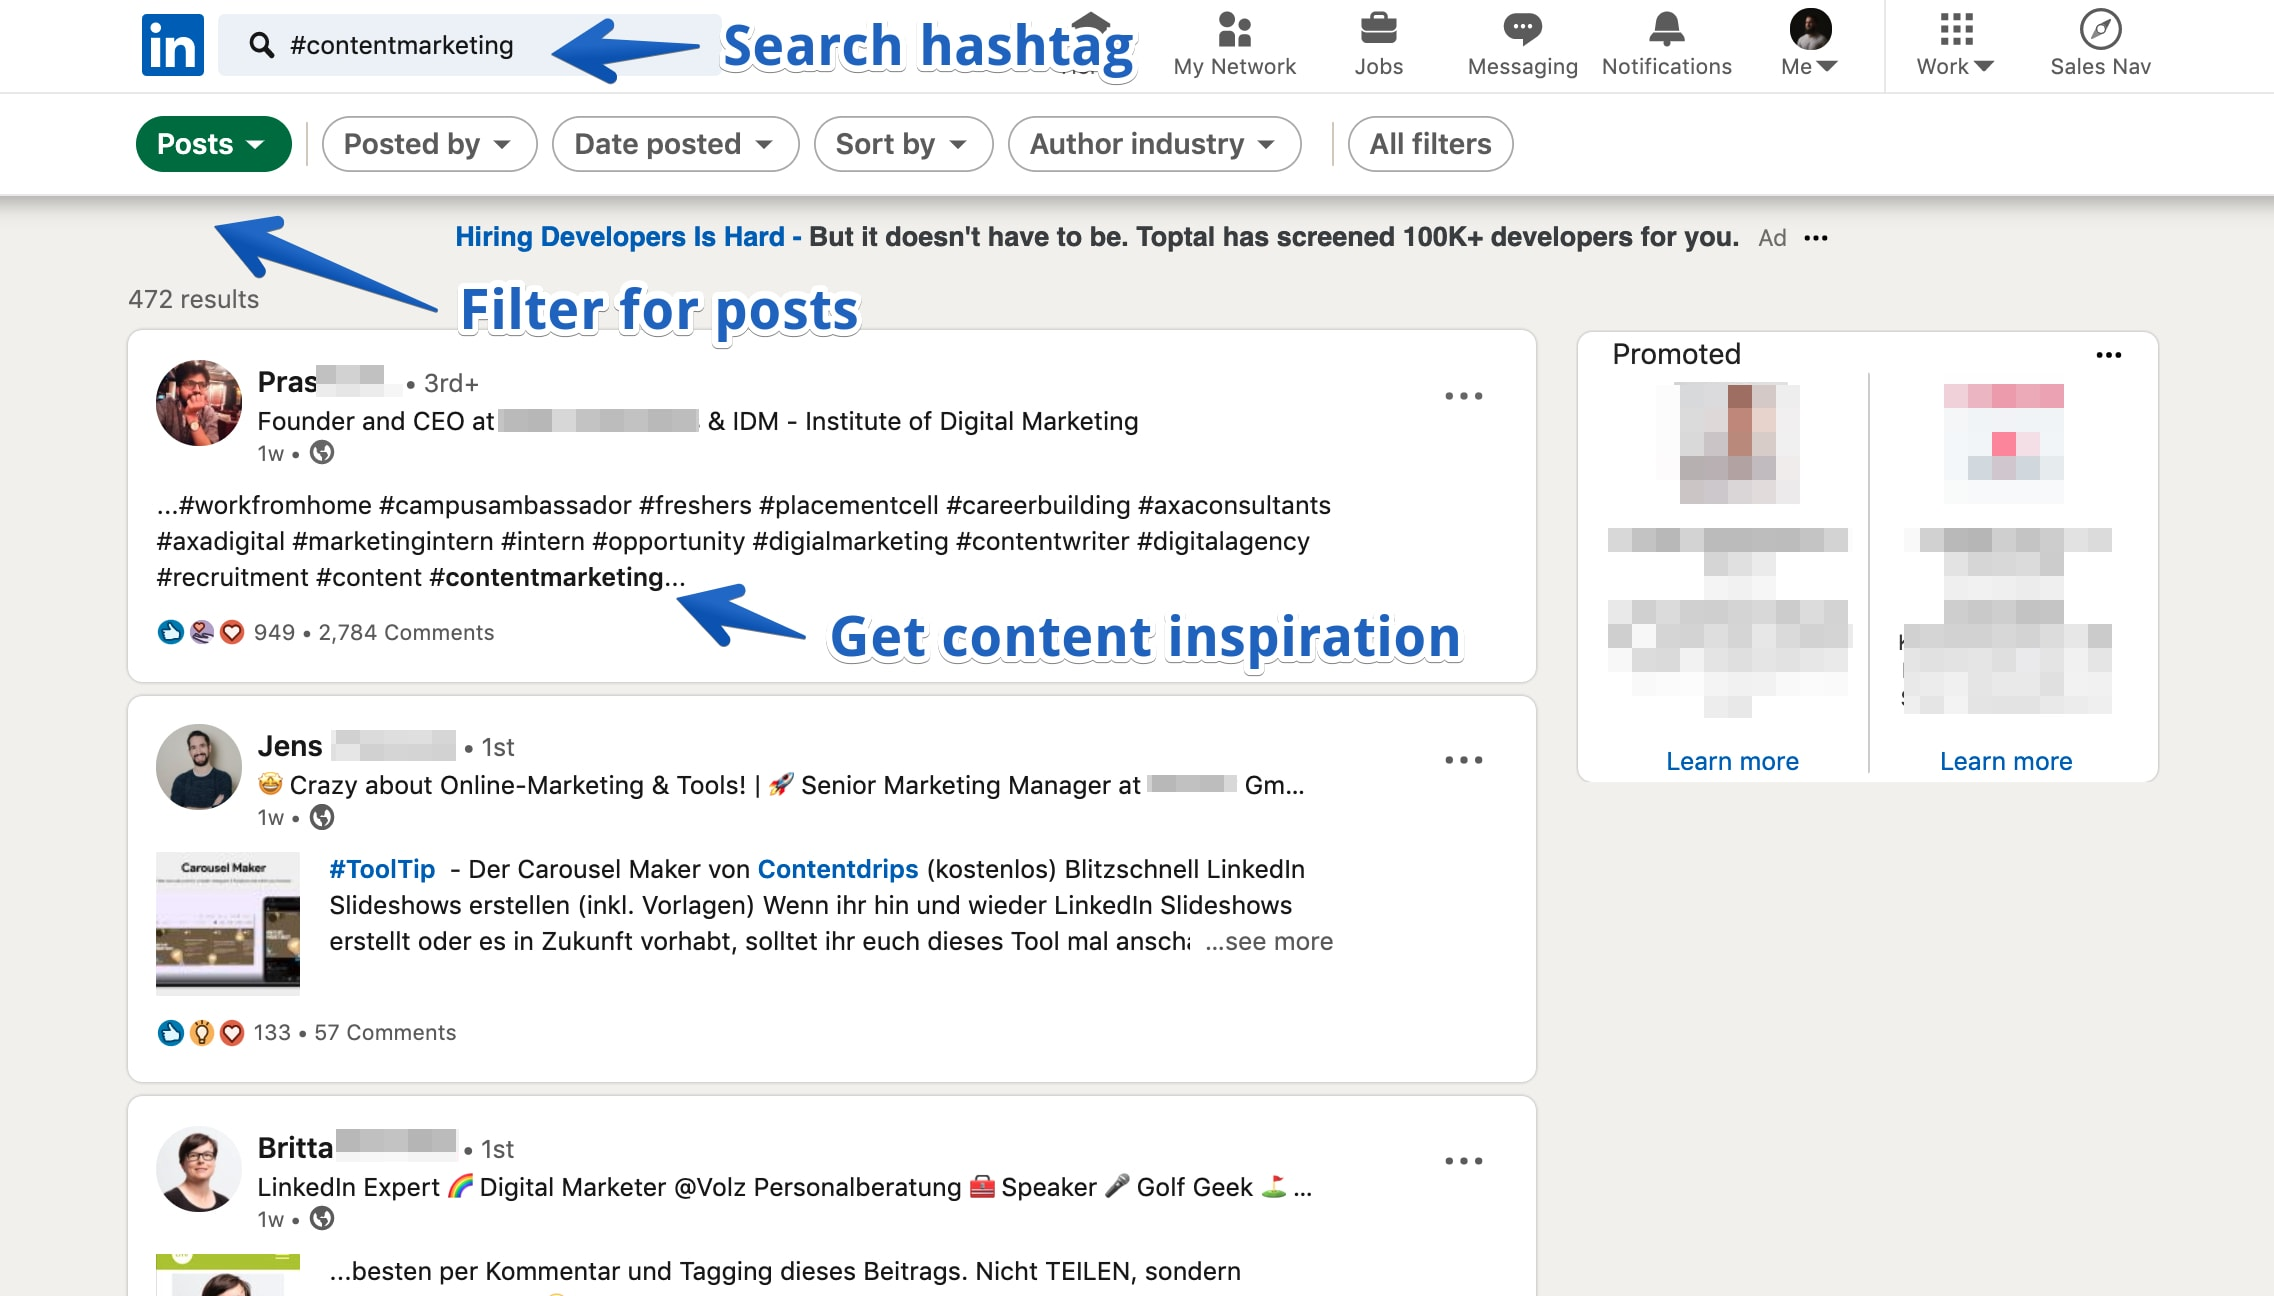 LinkedIn searching for hashtag to find out if content matches intention